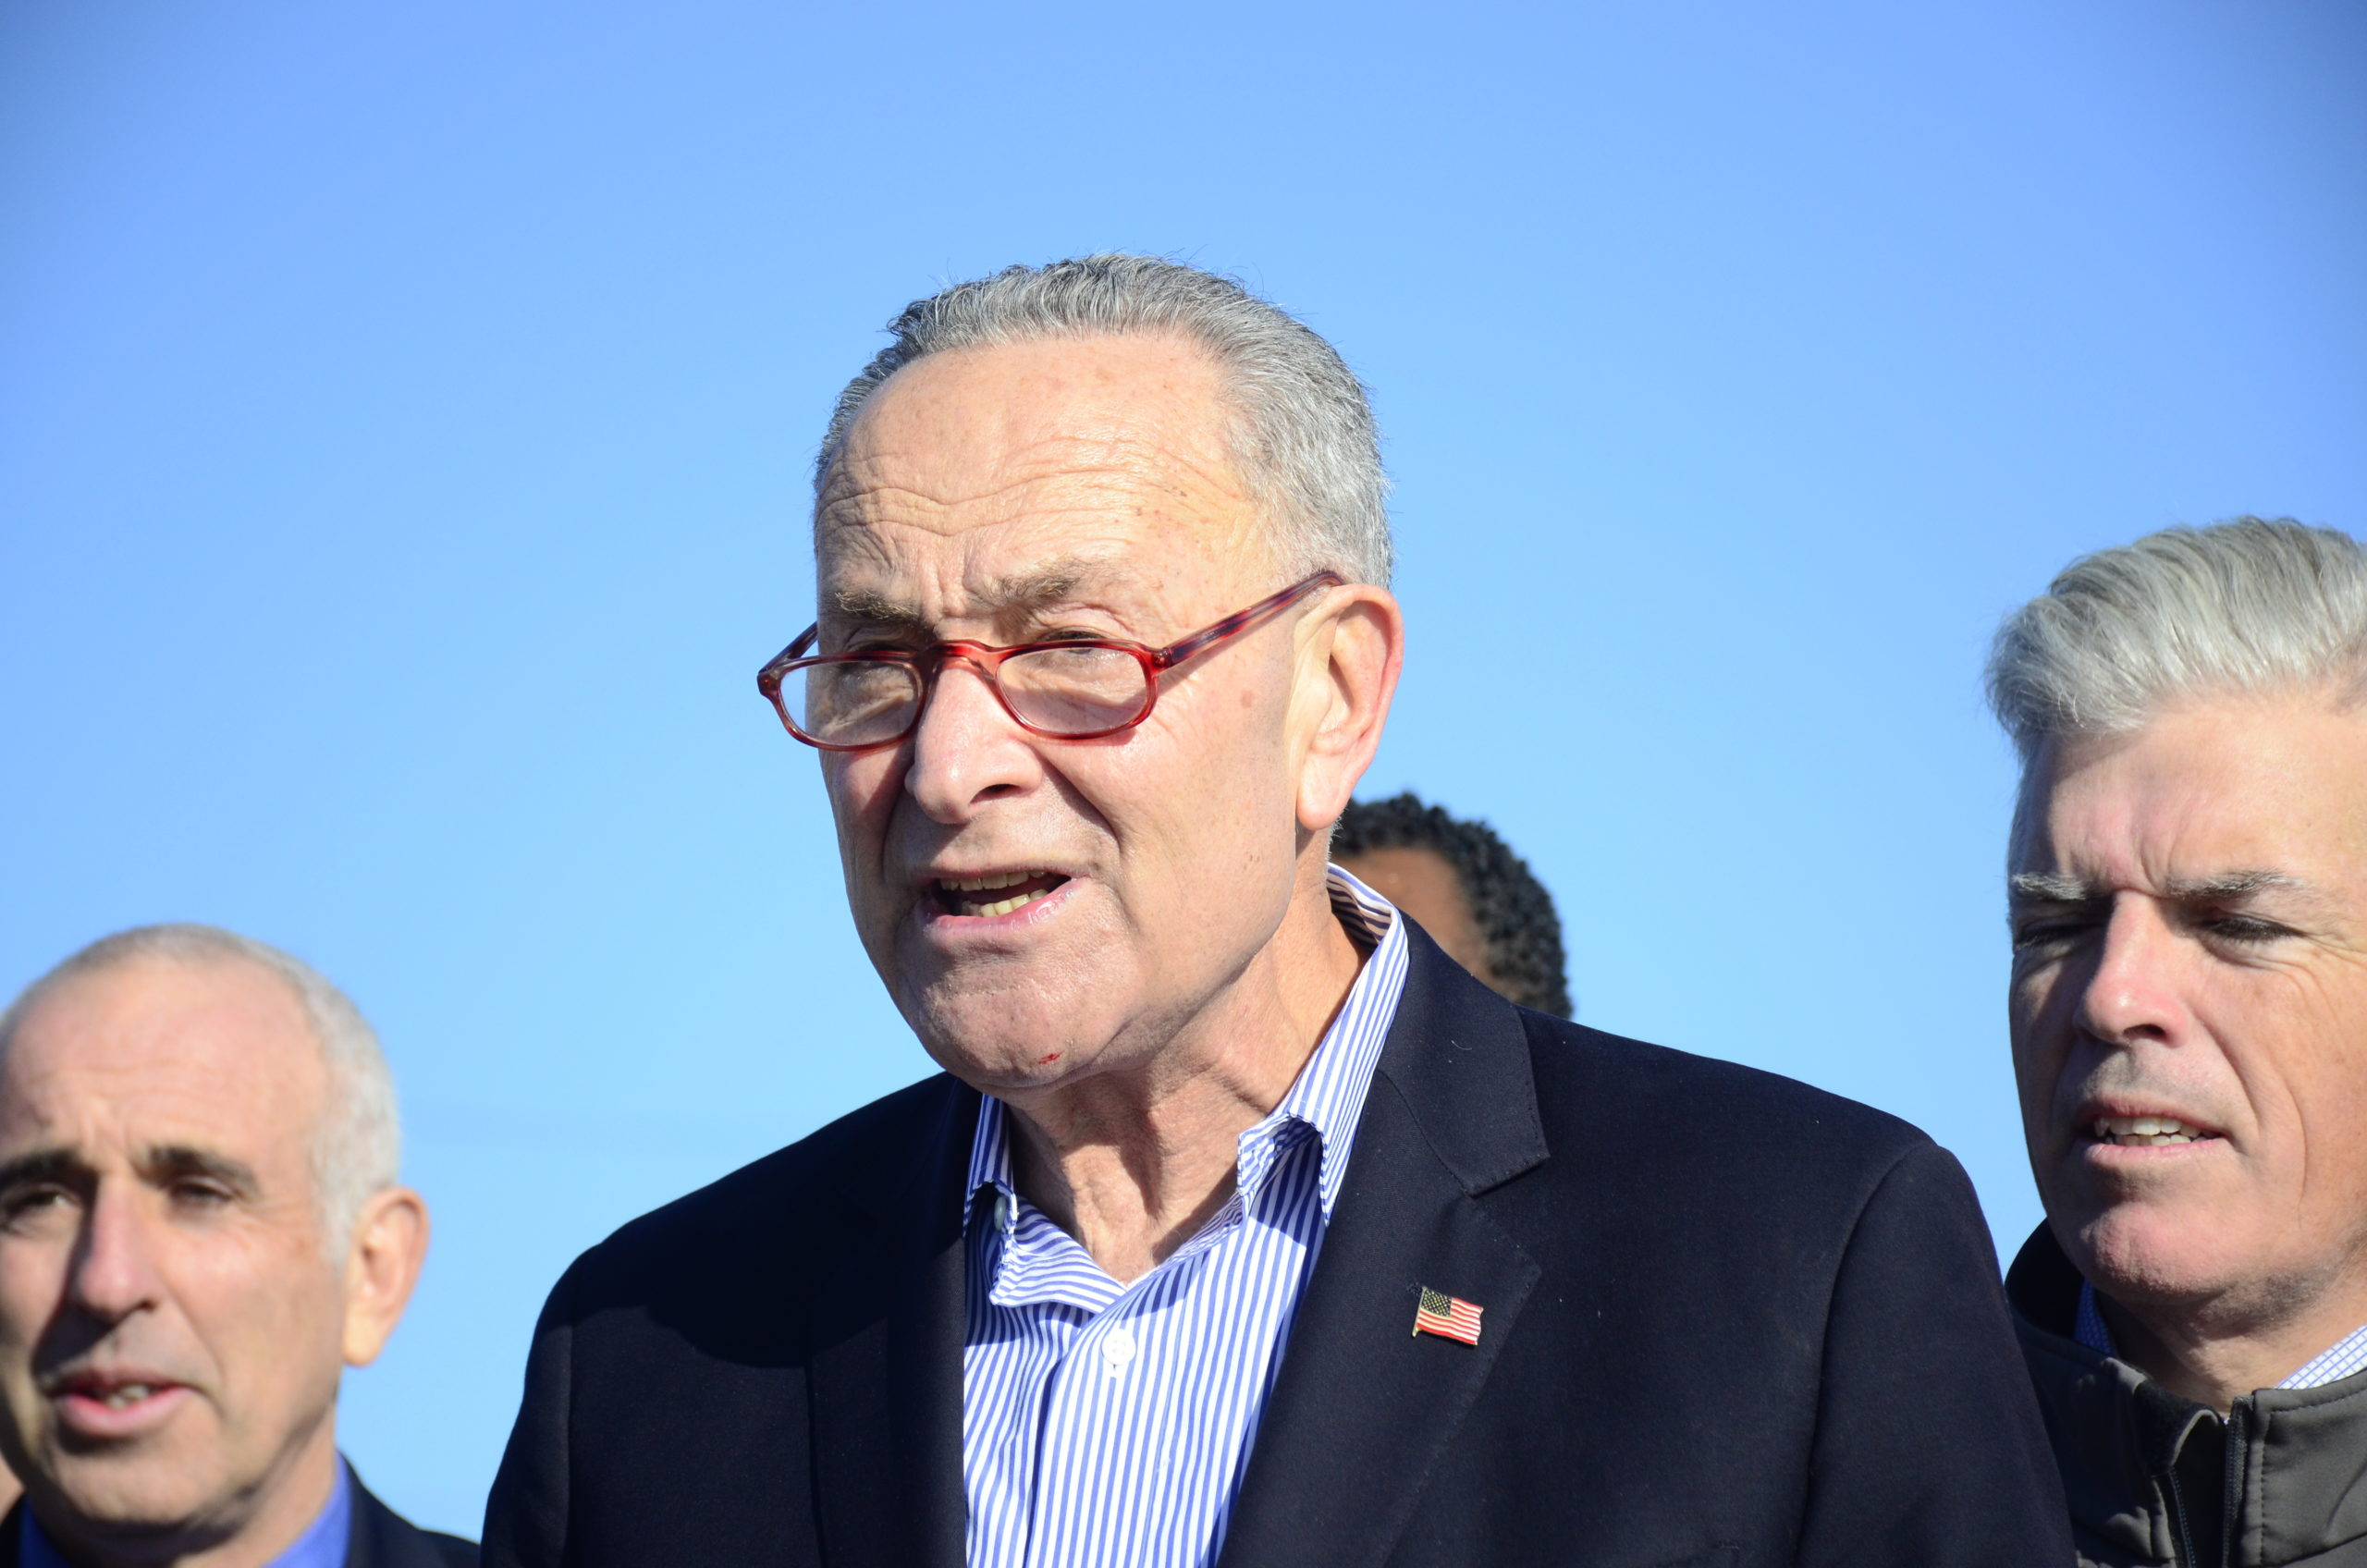 U.S. Senator Chuck Schumer said he is working at the federal level to get additional dredging in Hampton Bays. GREG WEHNER